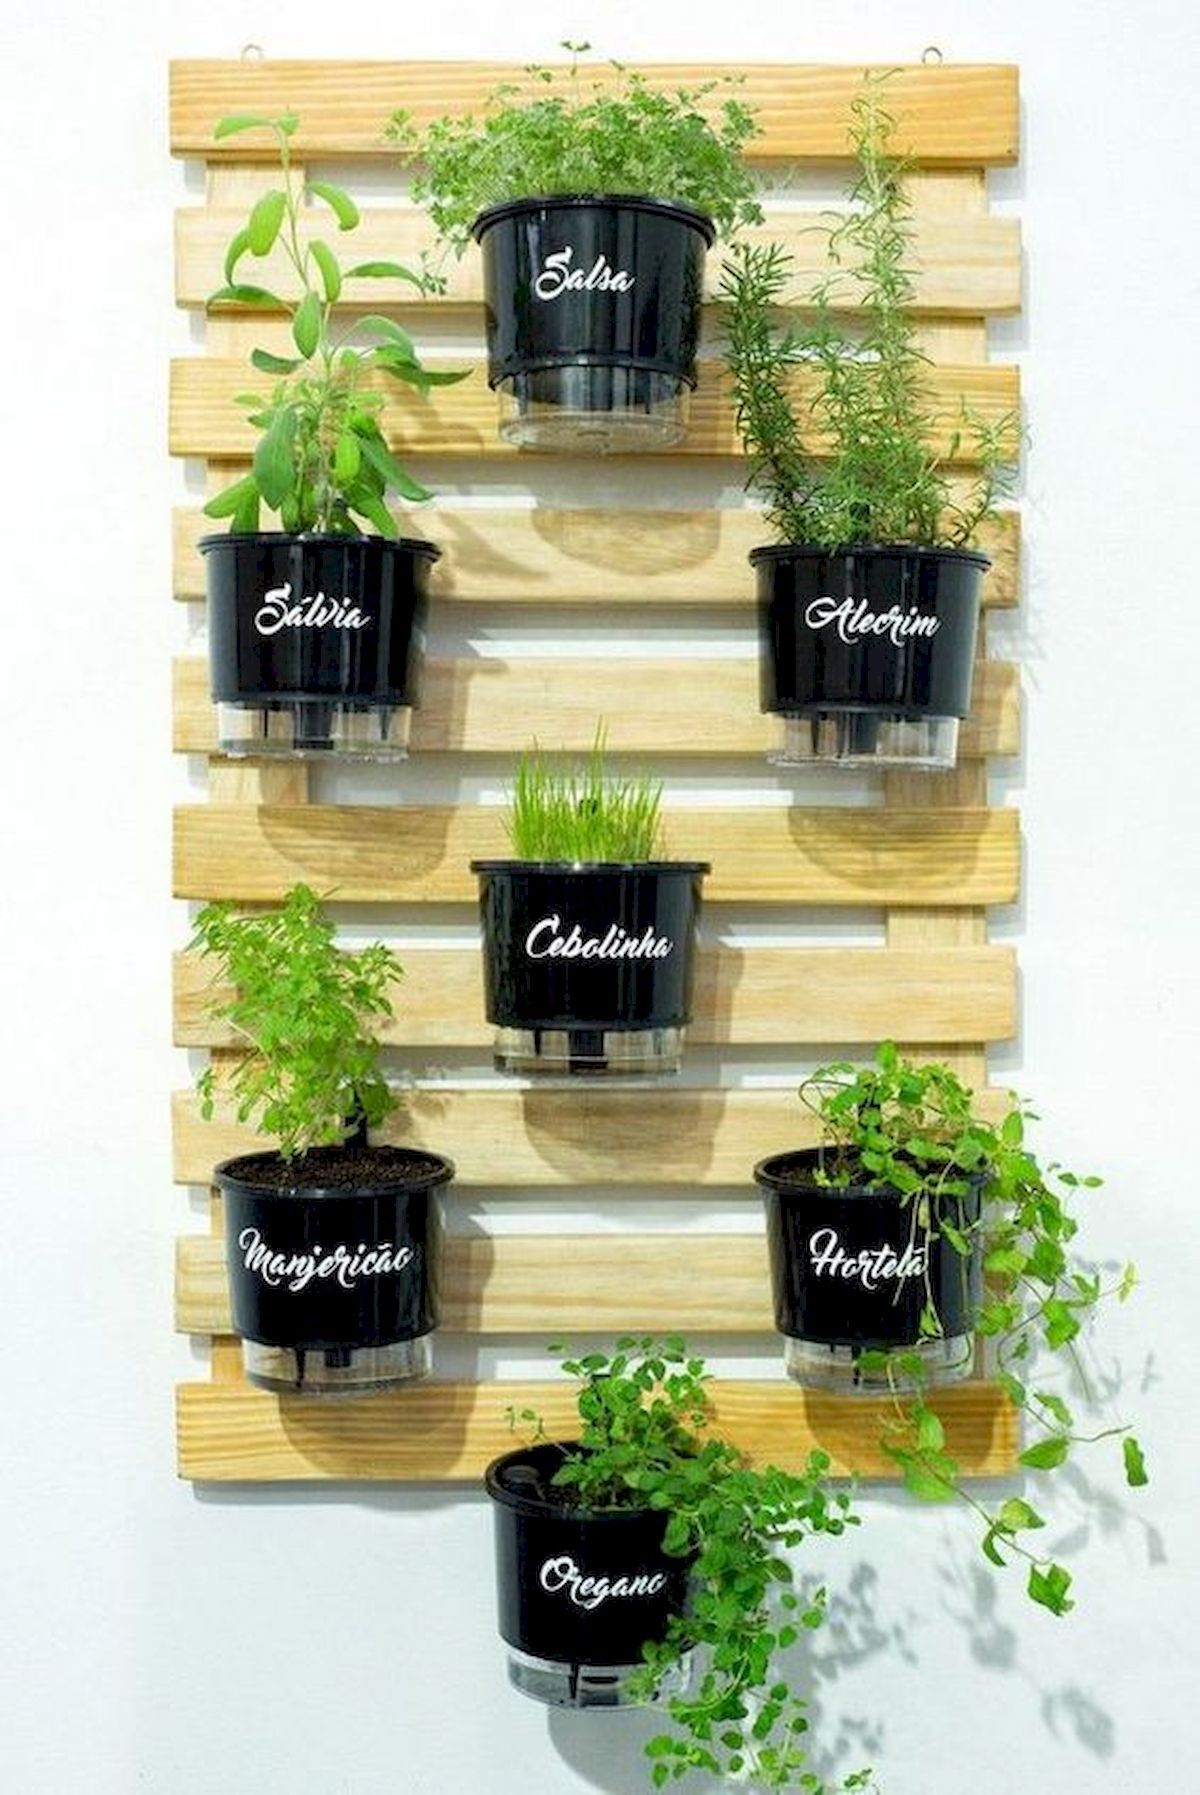 50 Inspiring Herb Garden Design Ideas And Remodel is part of Herb garden design, Garden, Indoor herb garden, Herb garden, Vertical garden, Indoor garden - Every garden needs herbs! Herbs like rosemary are what bring meals to life, and you only need a few sprigs or leaves to contribute bags of flavor and turn the ordinary into the extraordinary  Herb gardens may be designed to… Continue Reading →